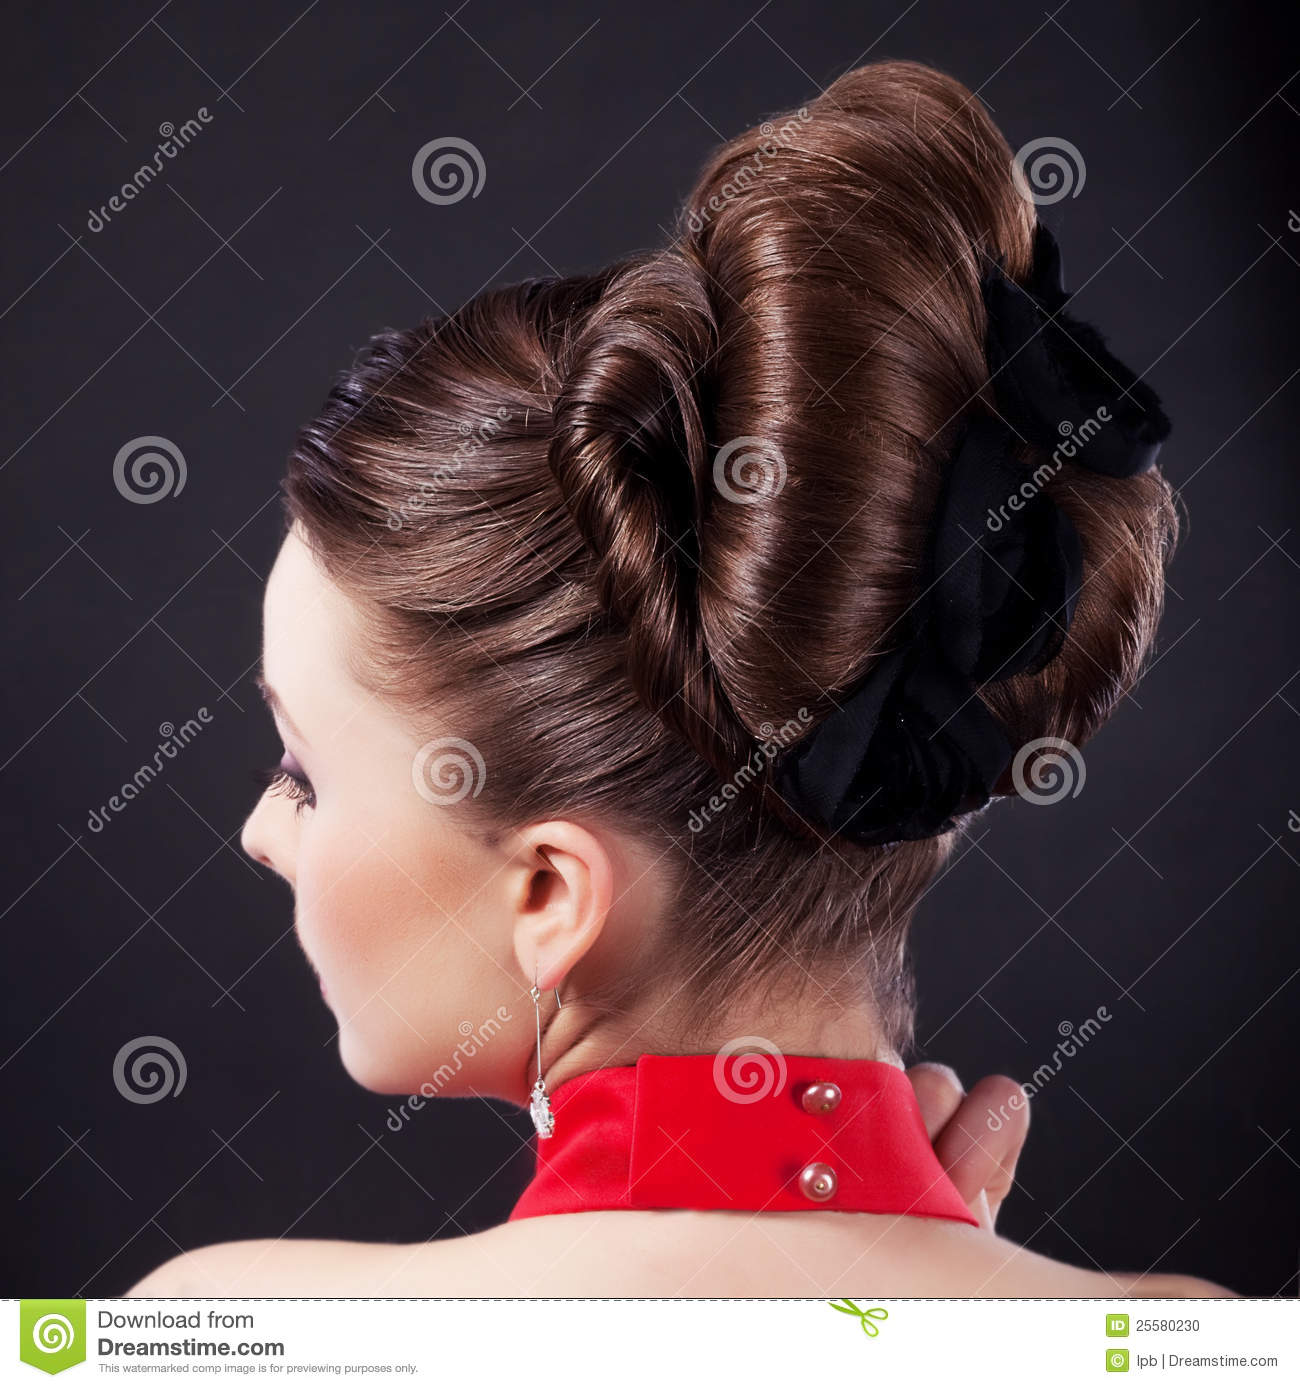 Festive Hairstyle And Beauty Coiffure Stock Photo Image Of